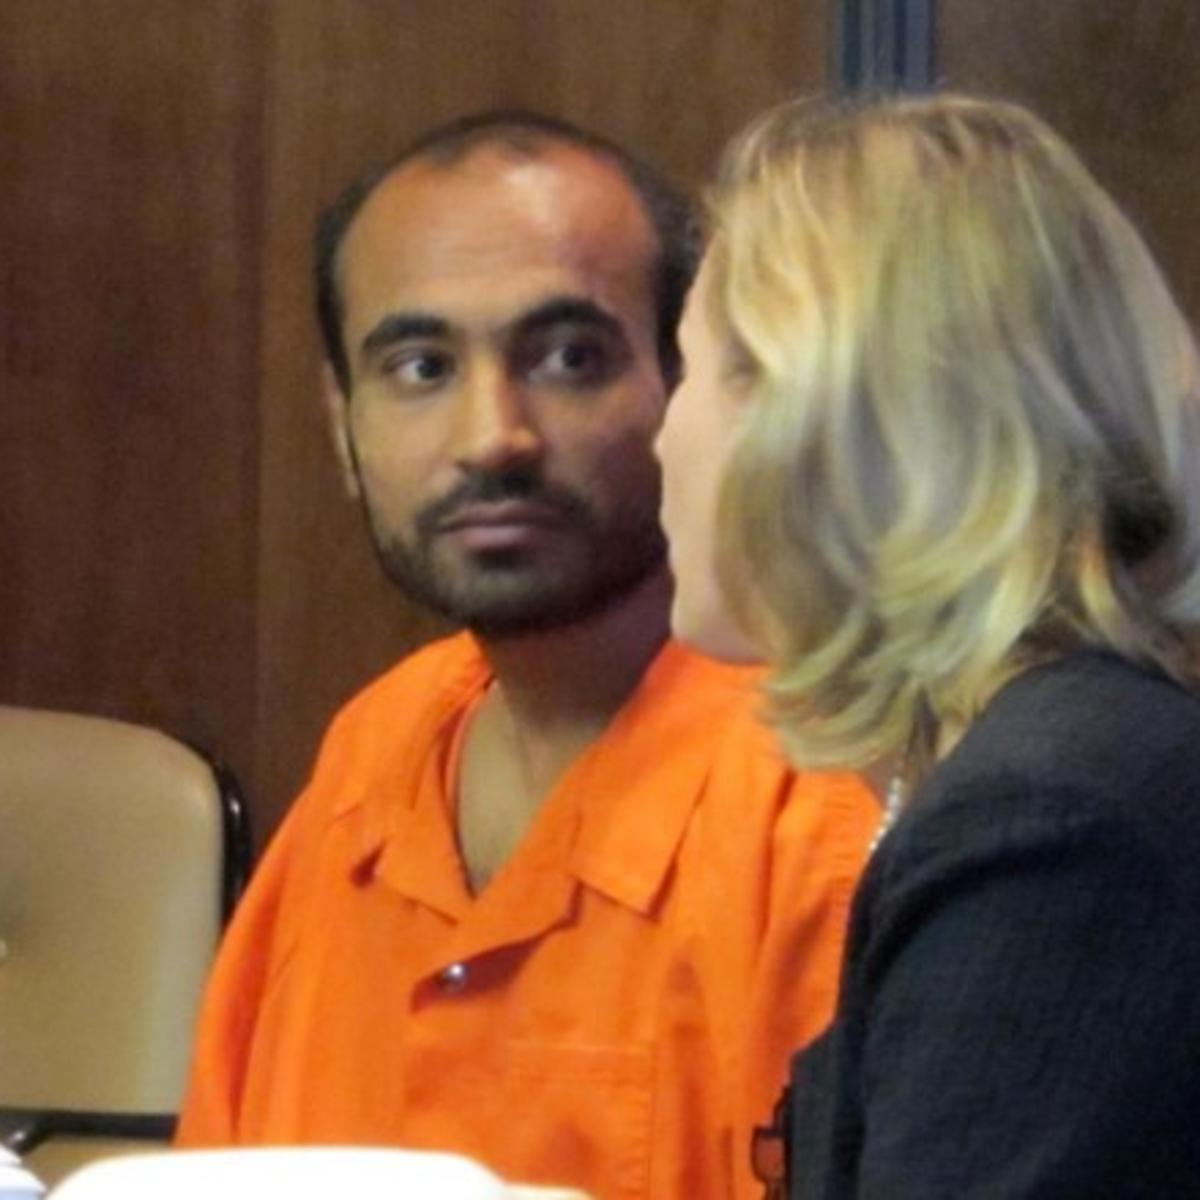 Judge denies bond for Florence double slaying suspect